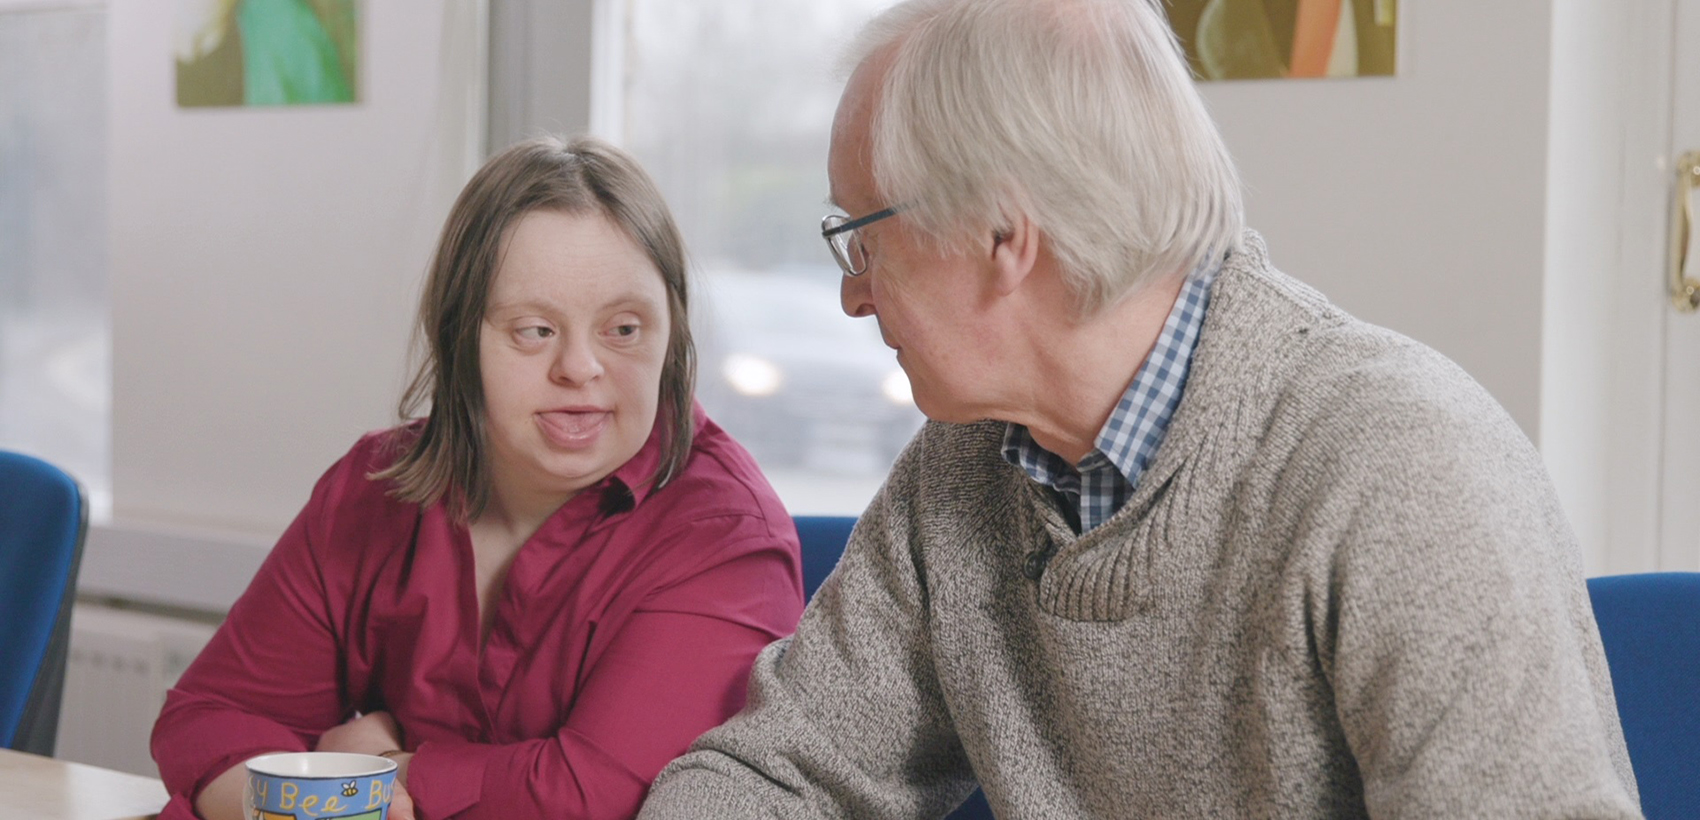 Housing and Support for Those with a Disability or Mental Health Condition